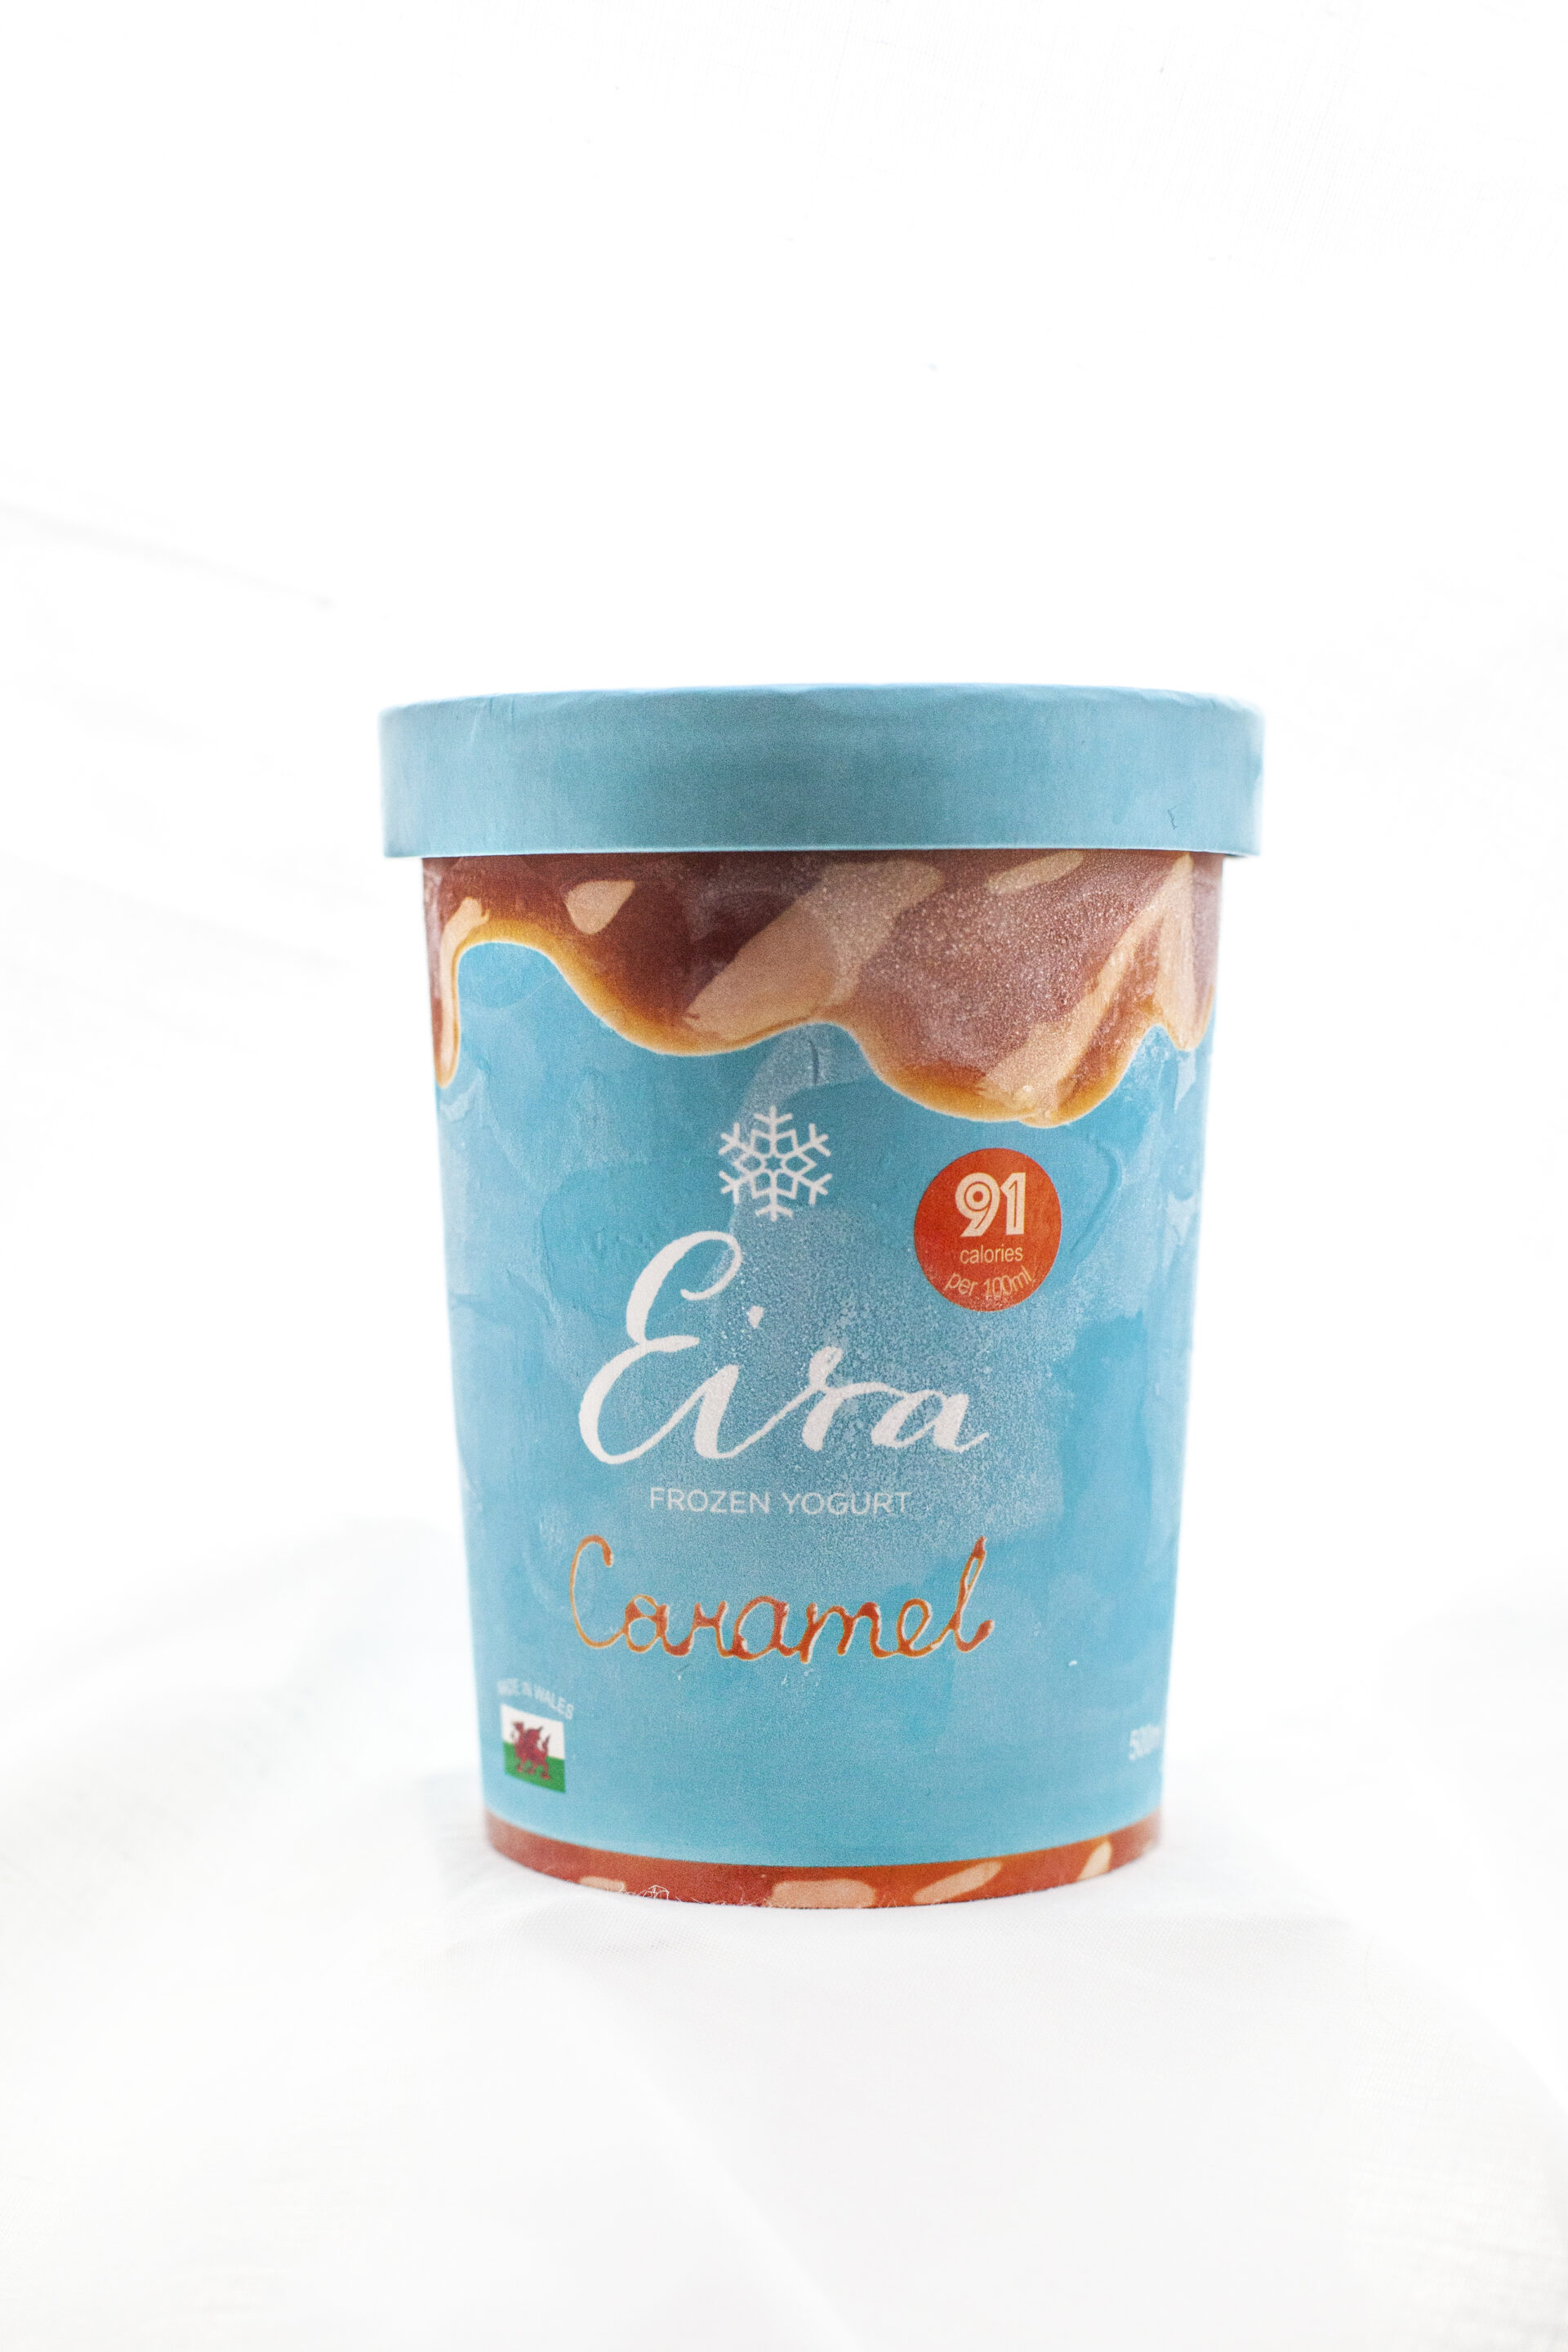 Eira Frozen Yogurt